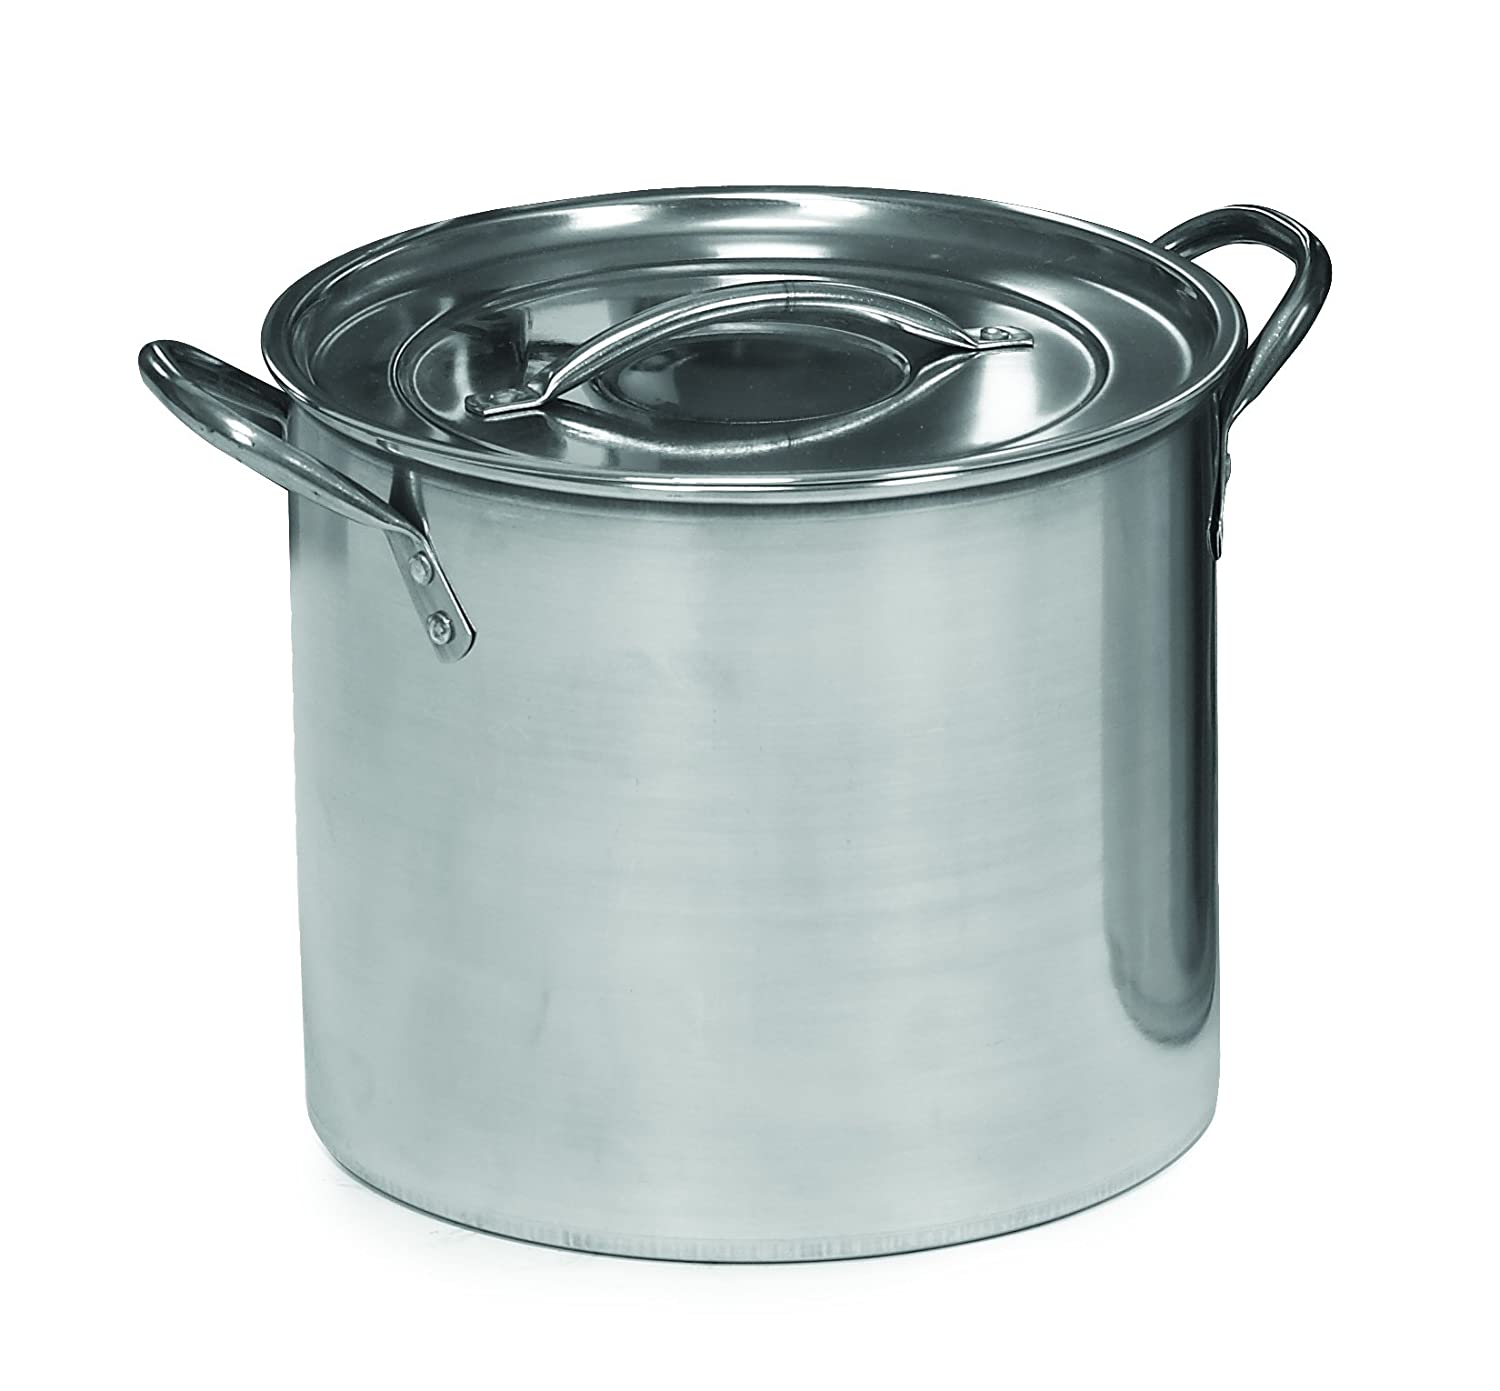 Imusa Stainless Steel Stock Pot, 20 Quart by Imusa: Amazon.es: Hogar